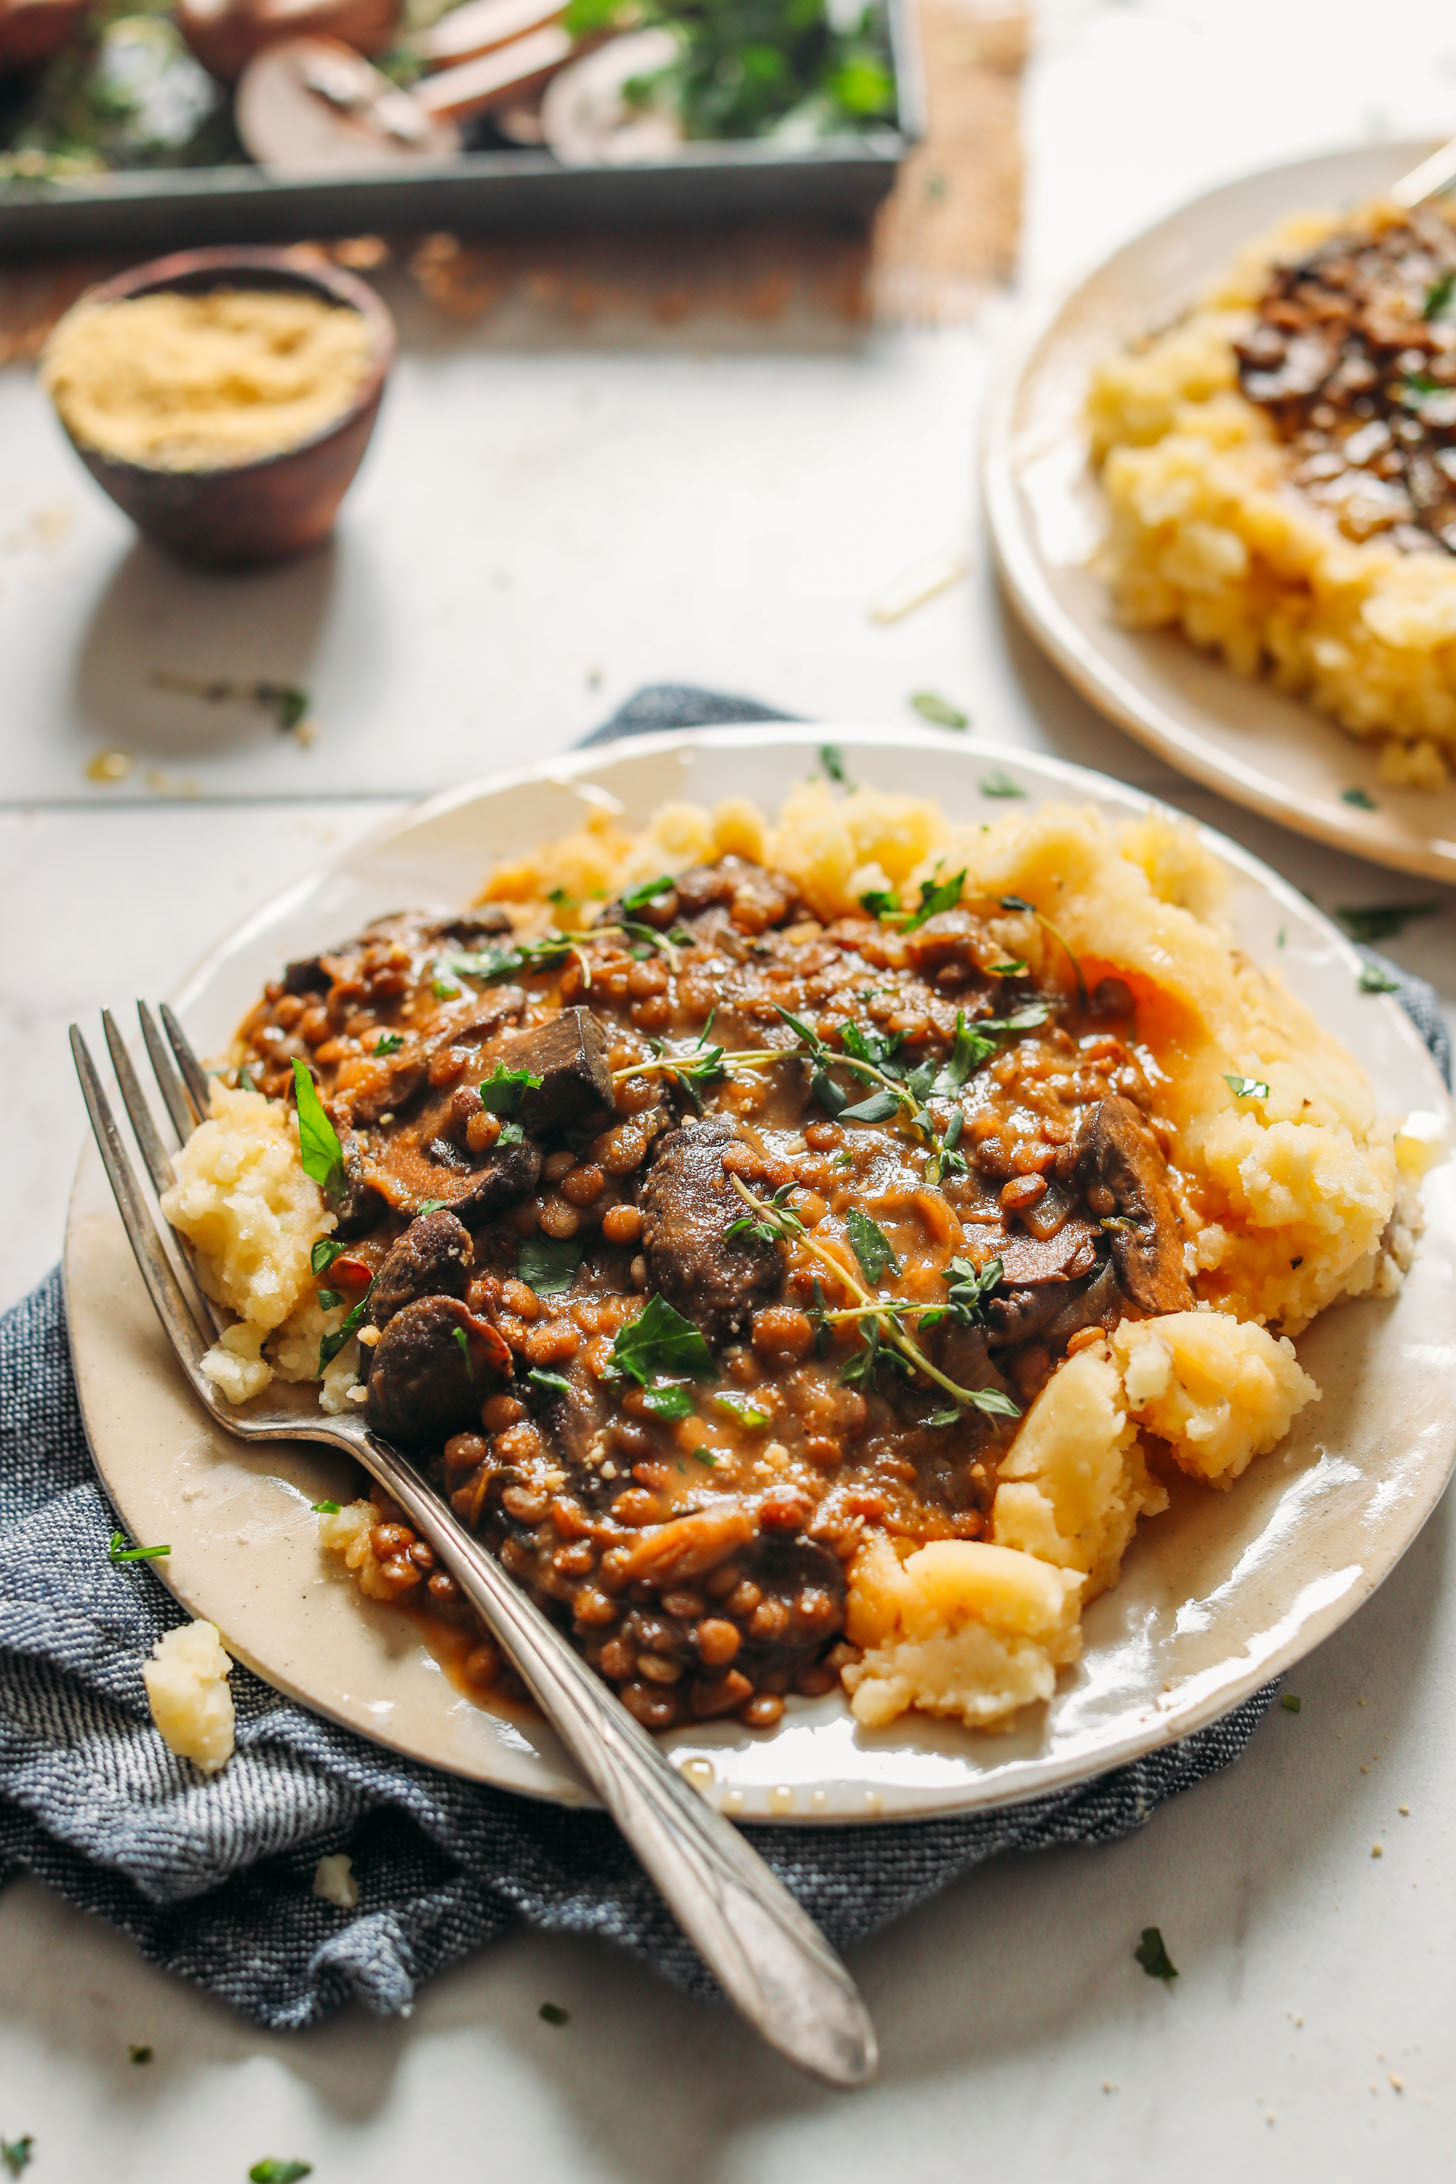 DELICIOUS Lentil Mushroom Stew over Mashed Potatoes! BIG flavor, 10 ingredients, SUPER hearty #vegan #glutenfree #potatoes #lentils #plantbased #minimalistbaker